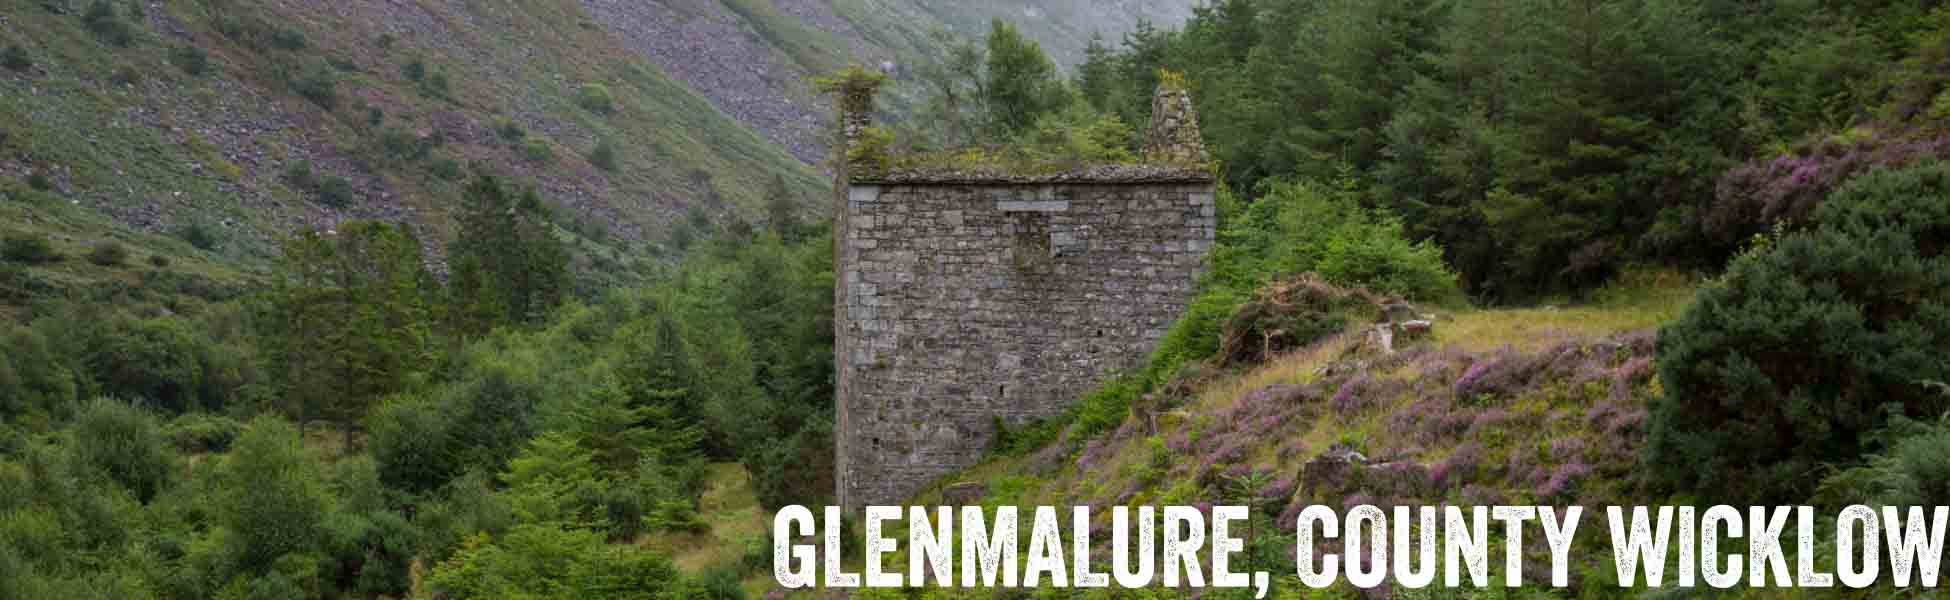 Glenmalure County Wicklow